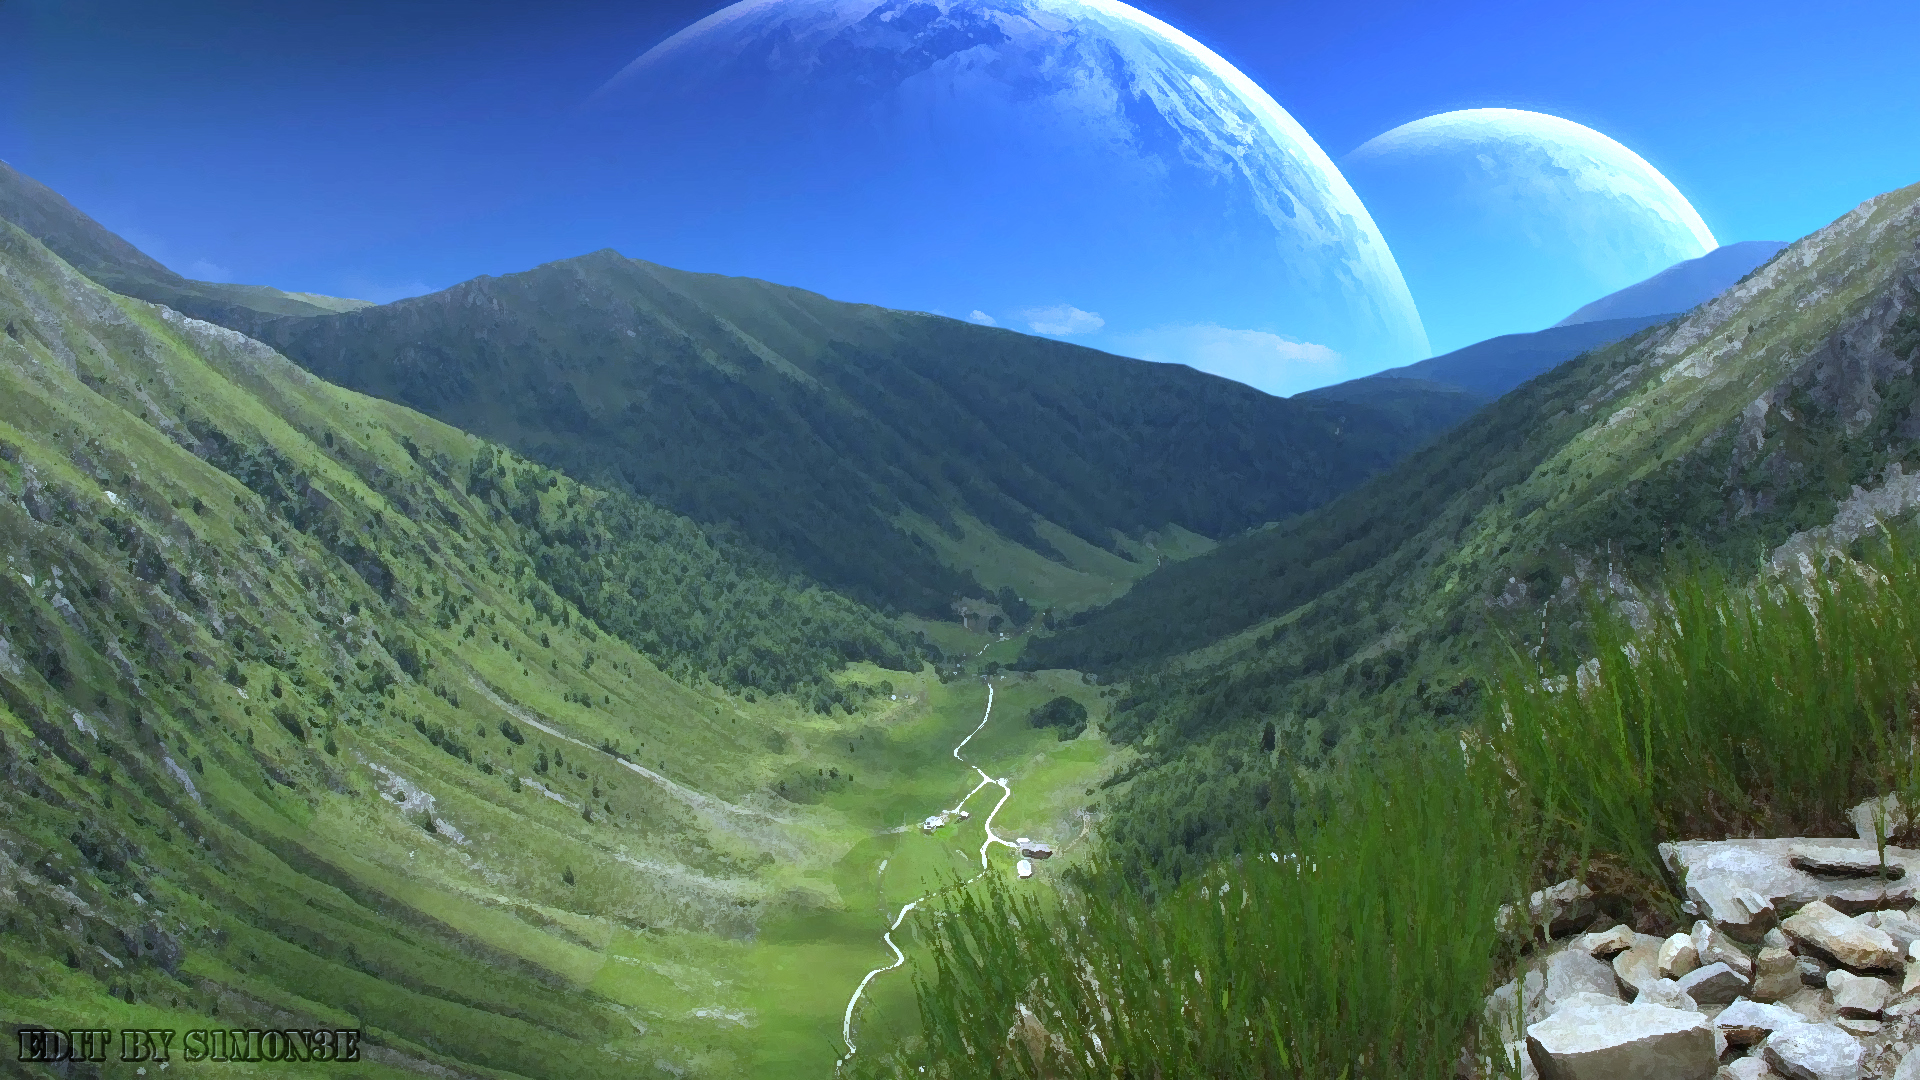 alien landscape by ttllkk2 on DeviantArt